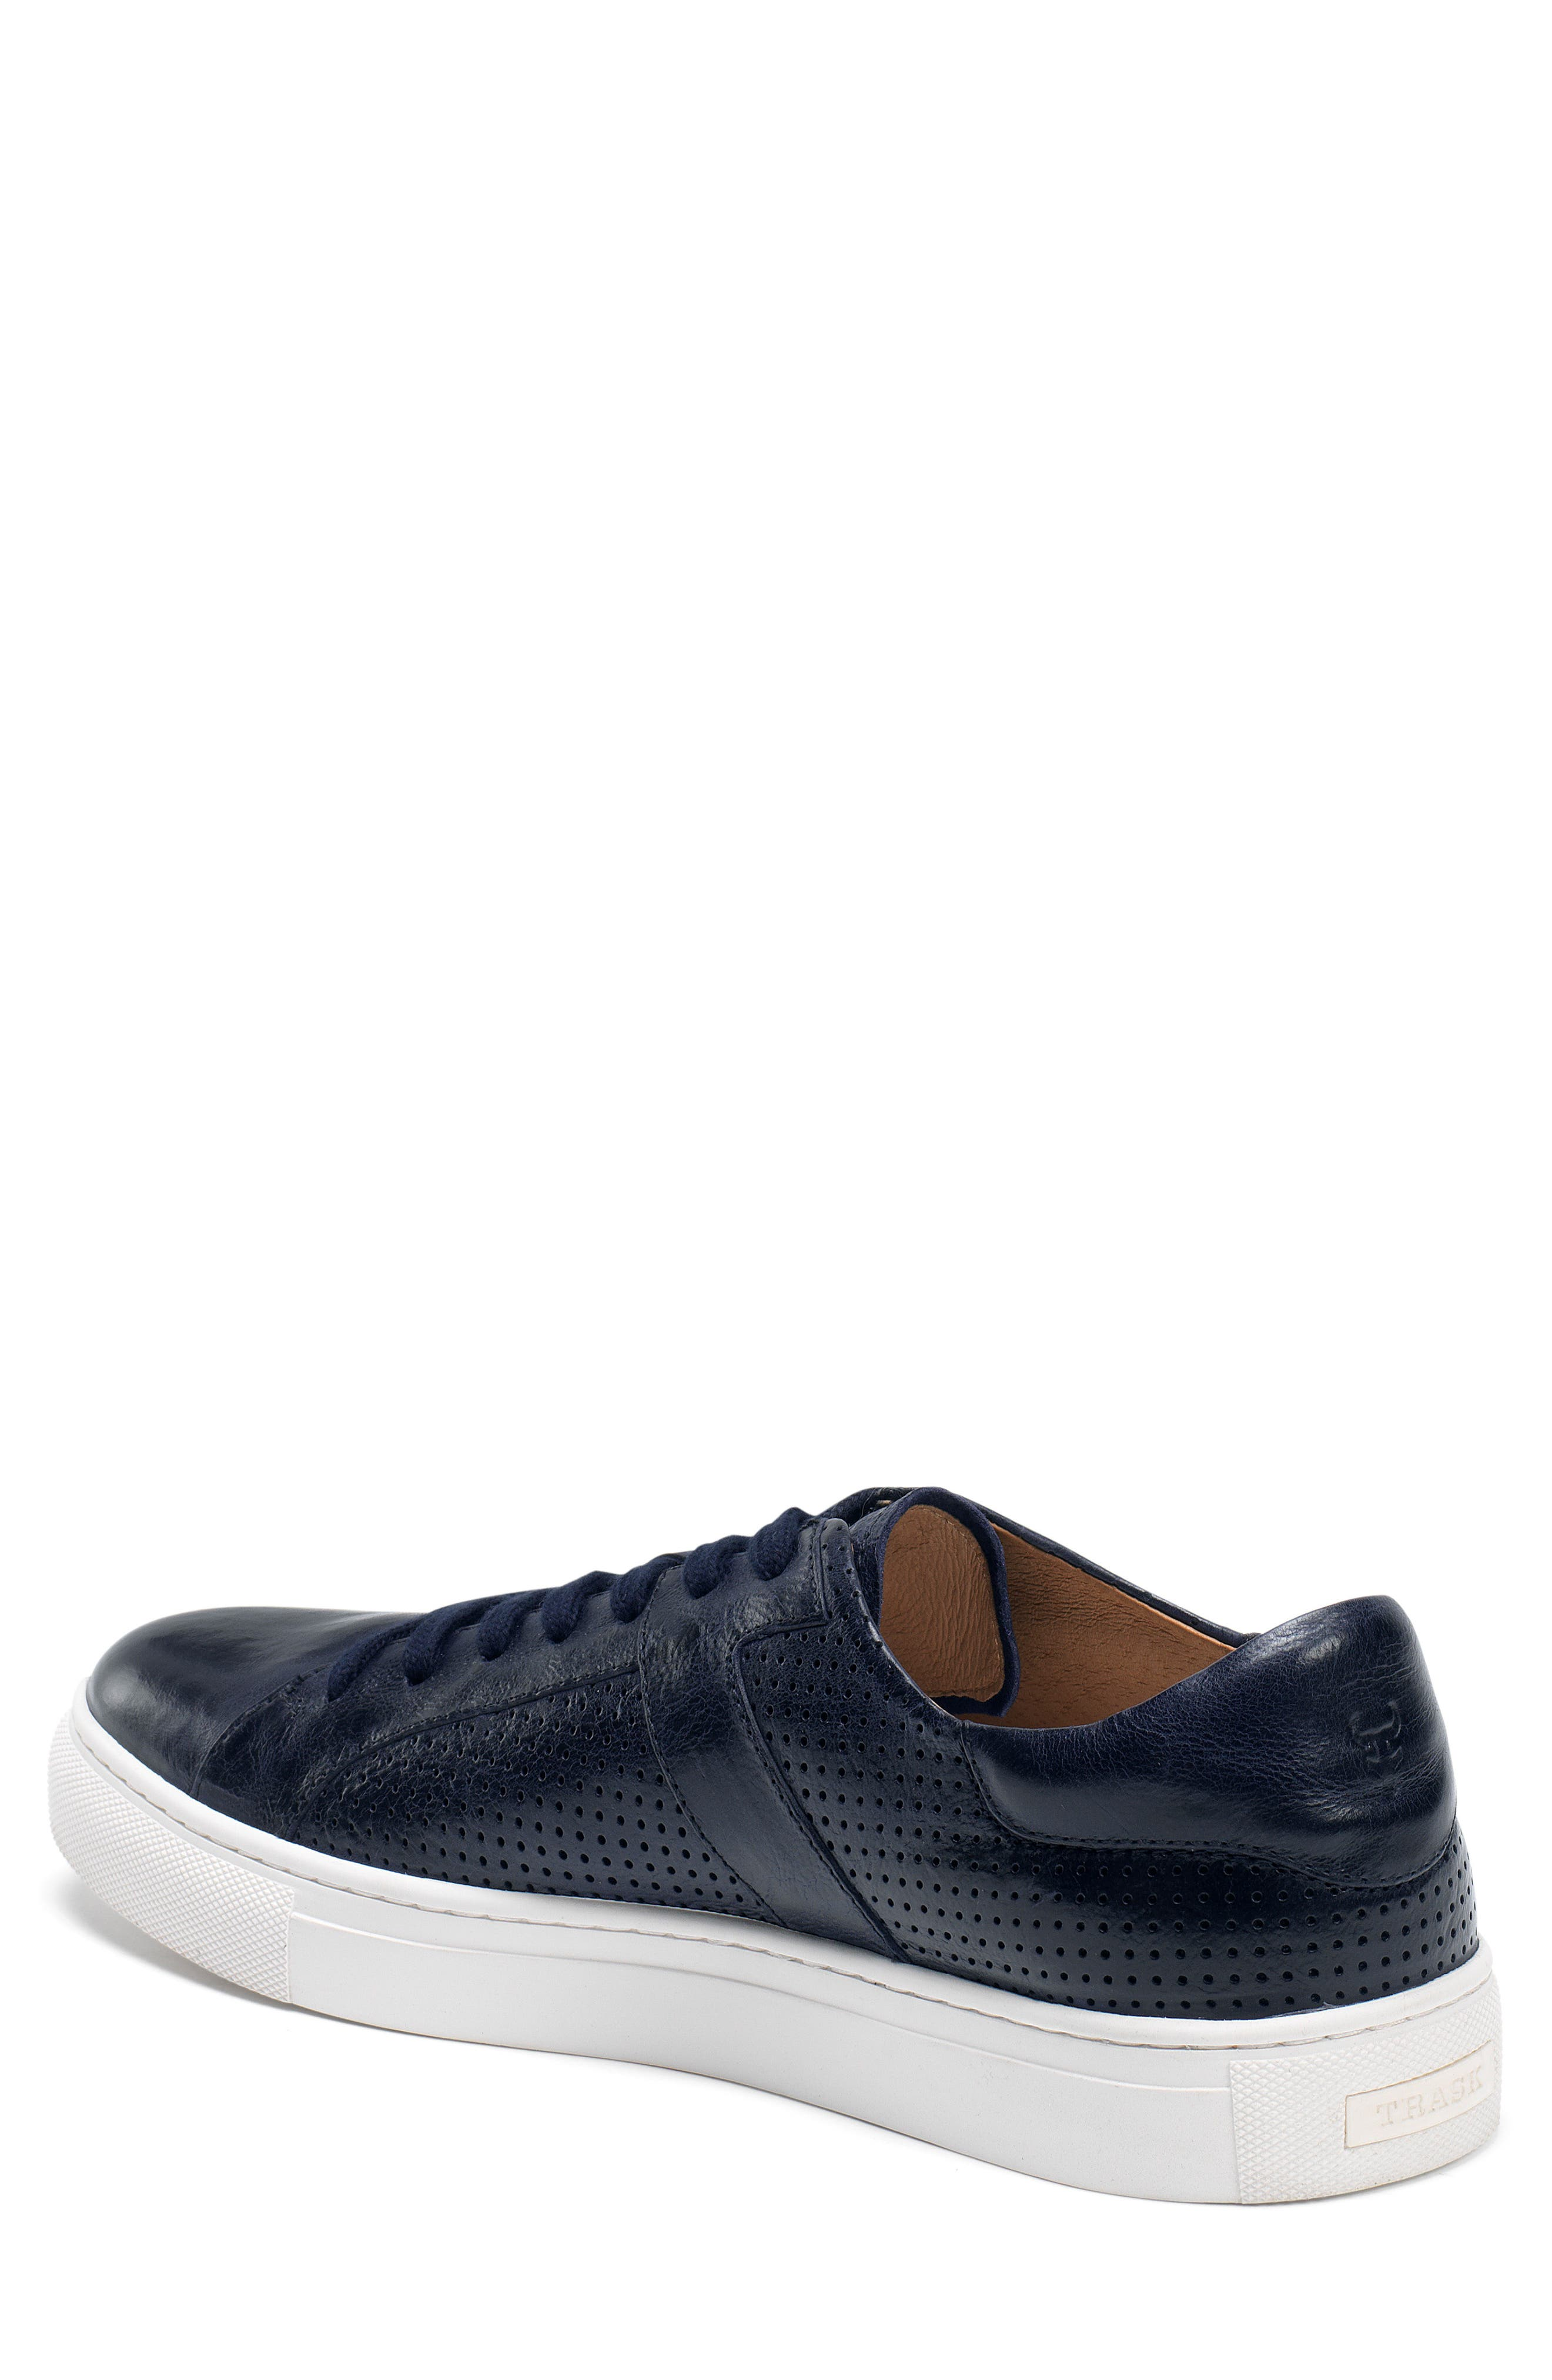 Aaron Sneaker,                             Alternate thumbnail 2, color,                             Navy Leather